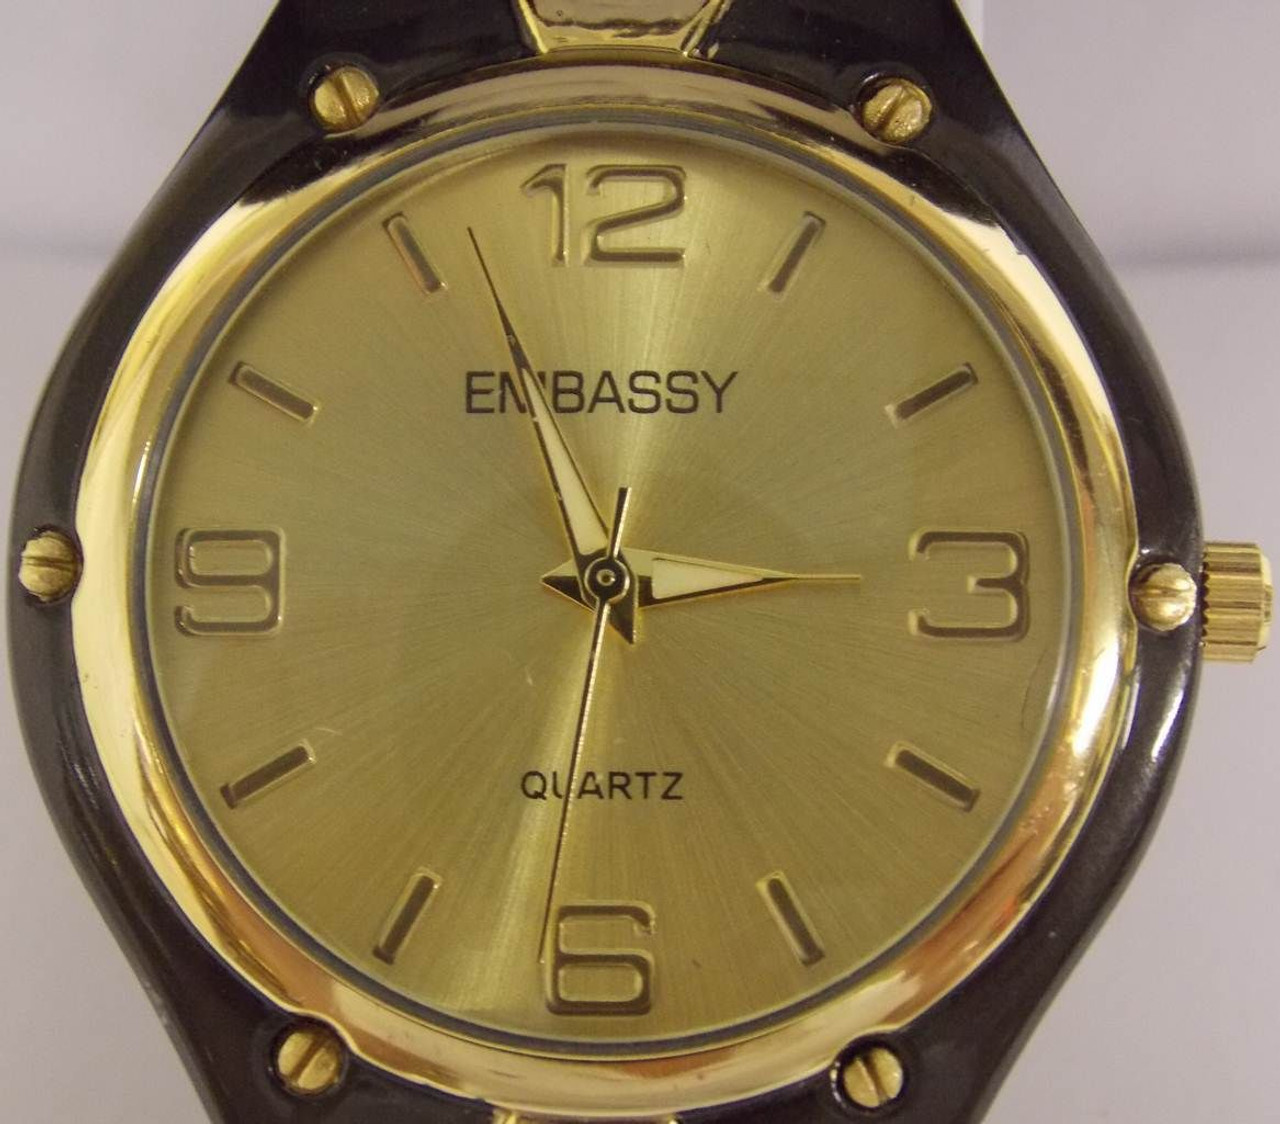 Men's Watch - Embassy Gold and Charcoal Grey